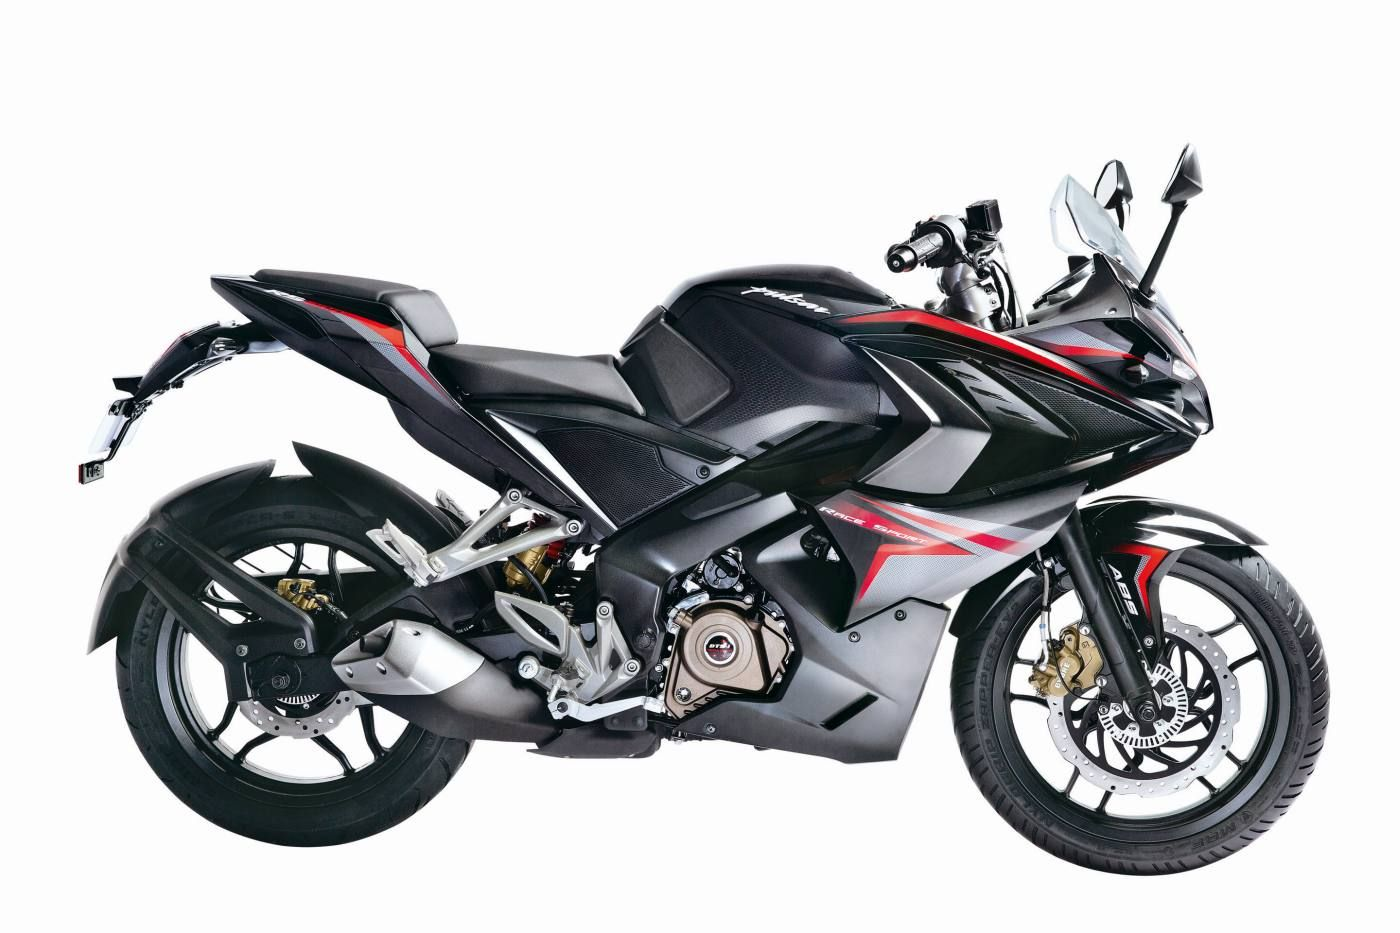 The new bajaj pulsar rs200 has had bajaj s cash registers singing ever - Bajaj Pulsar Rs 200 Fear The Black Edition Has Been Launched With A Sporty Demon Black Color Options The New Color Will Continue Alongside Red And Yellow